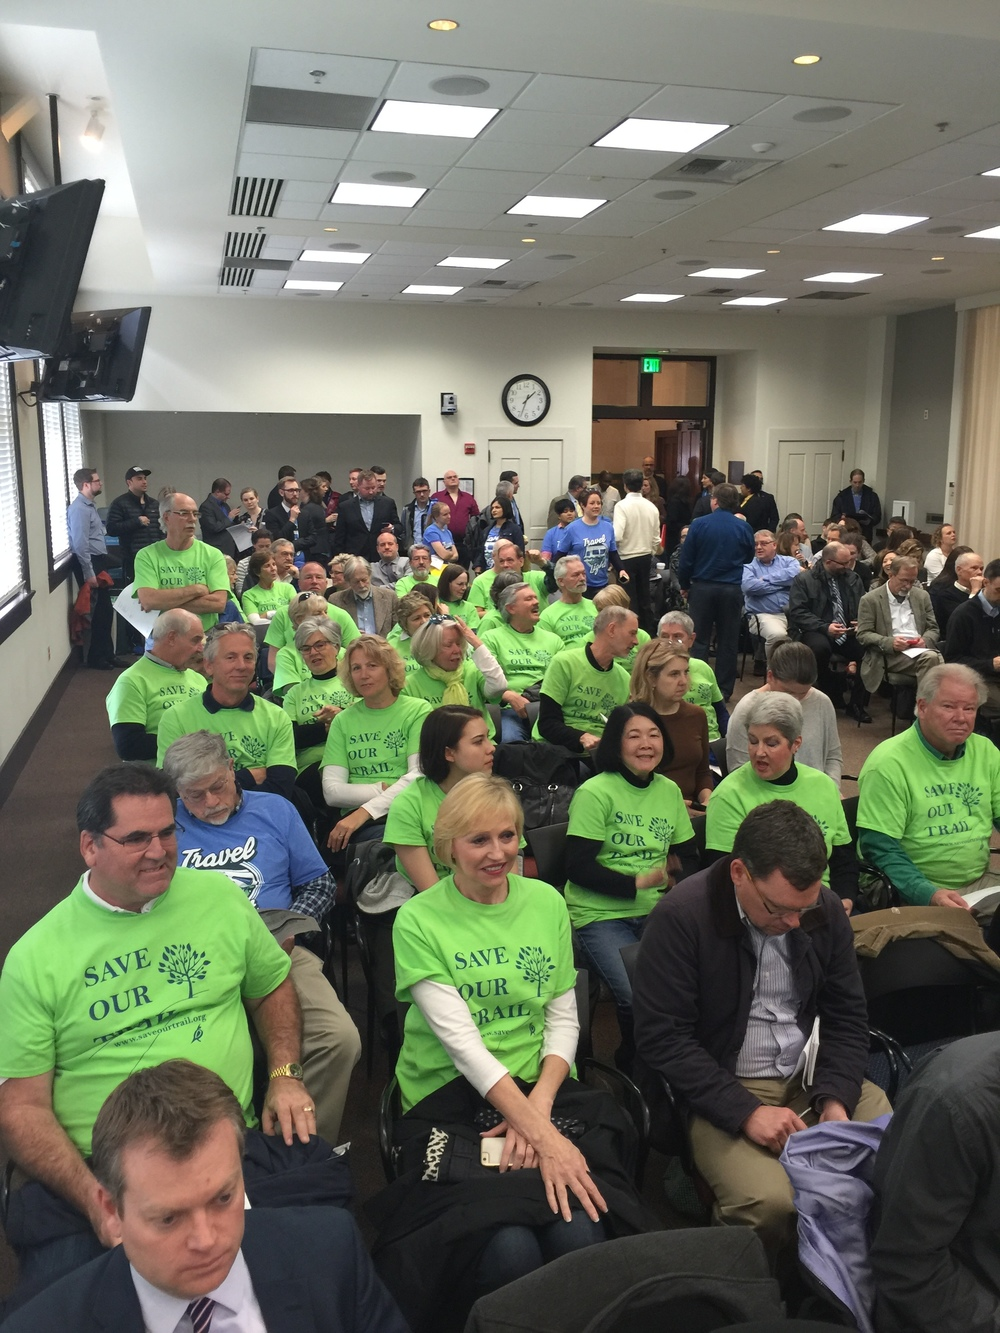 The 'Green Shirts' supporting Save Our Trail at the Sound Transit Board Meeting.